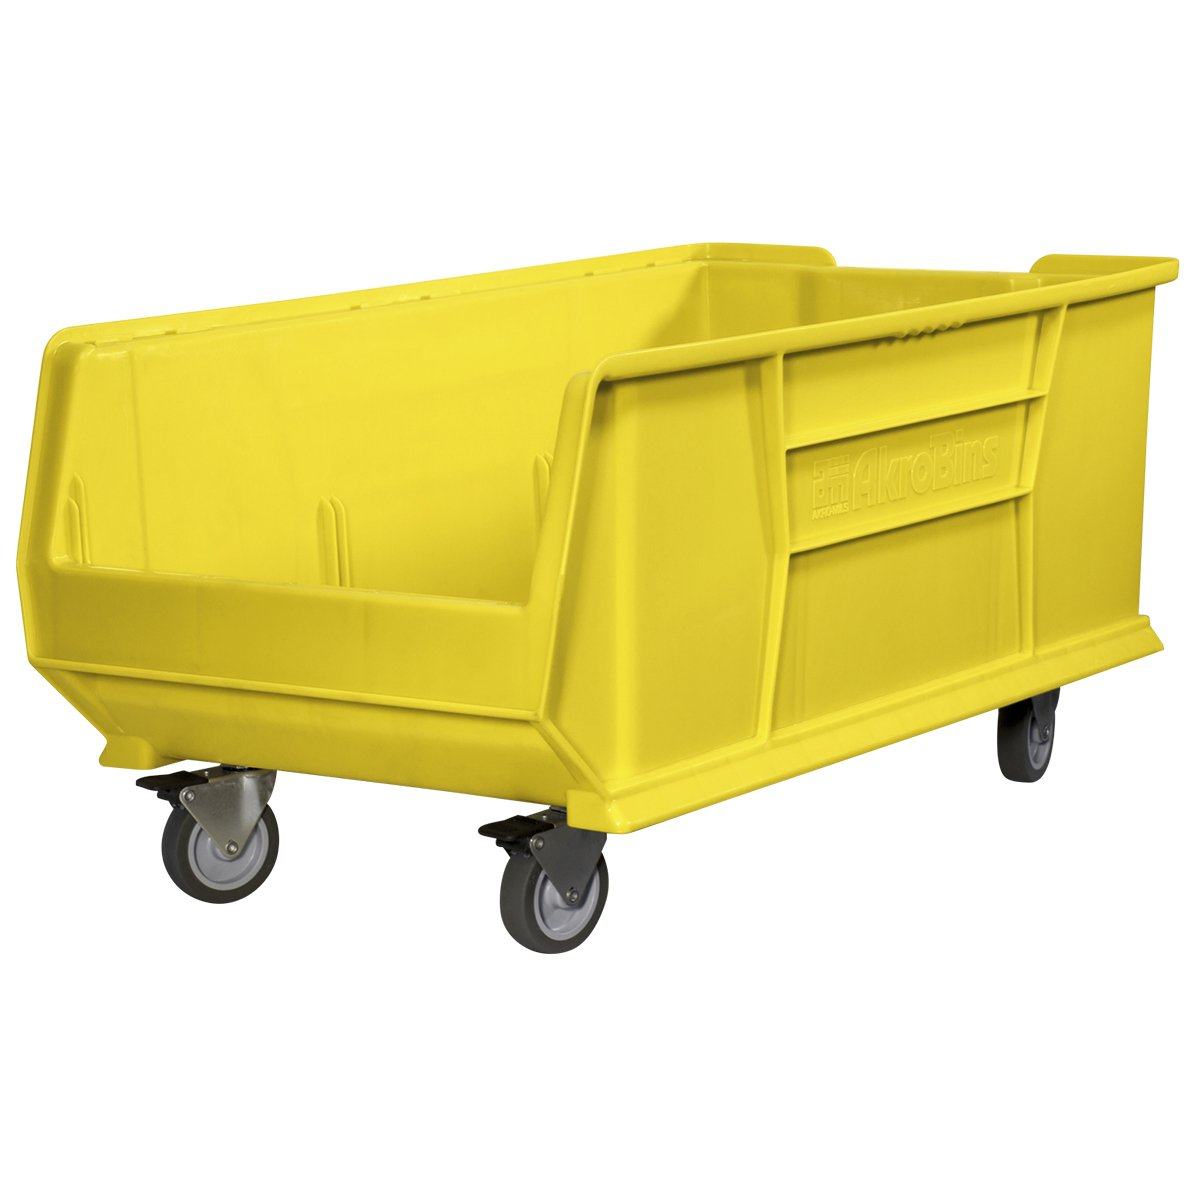 Akro-Mils 30293 Mobile Super Size Plastic Stacking Storage Akro Bin, 30-Inch x 16-Inch x 11-Inch, Yellow